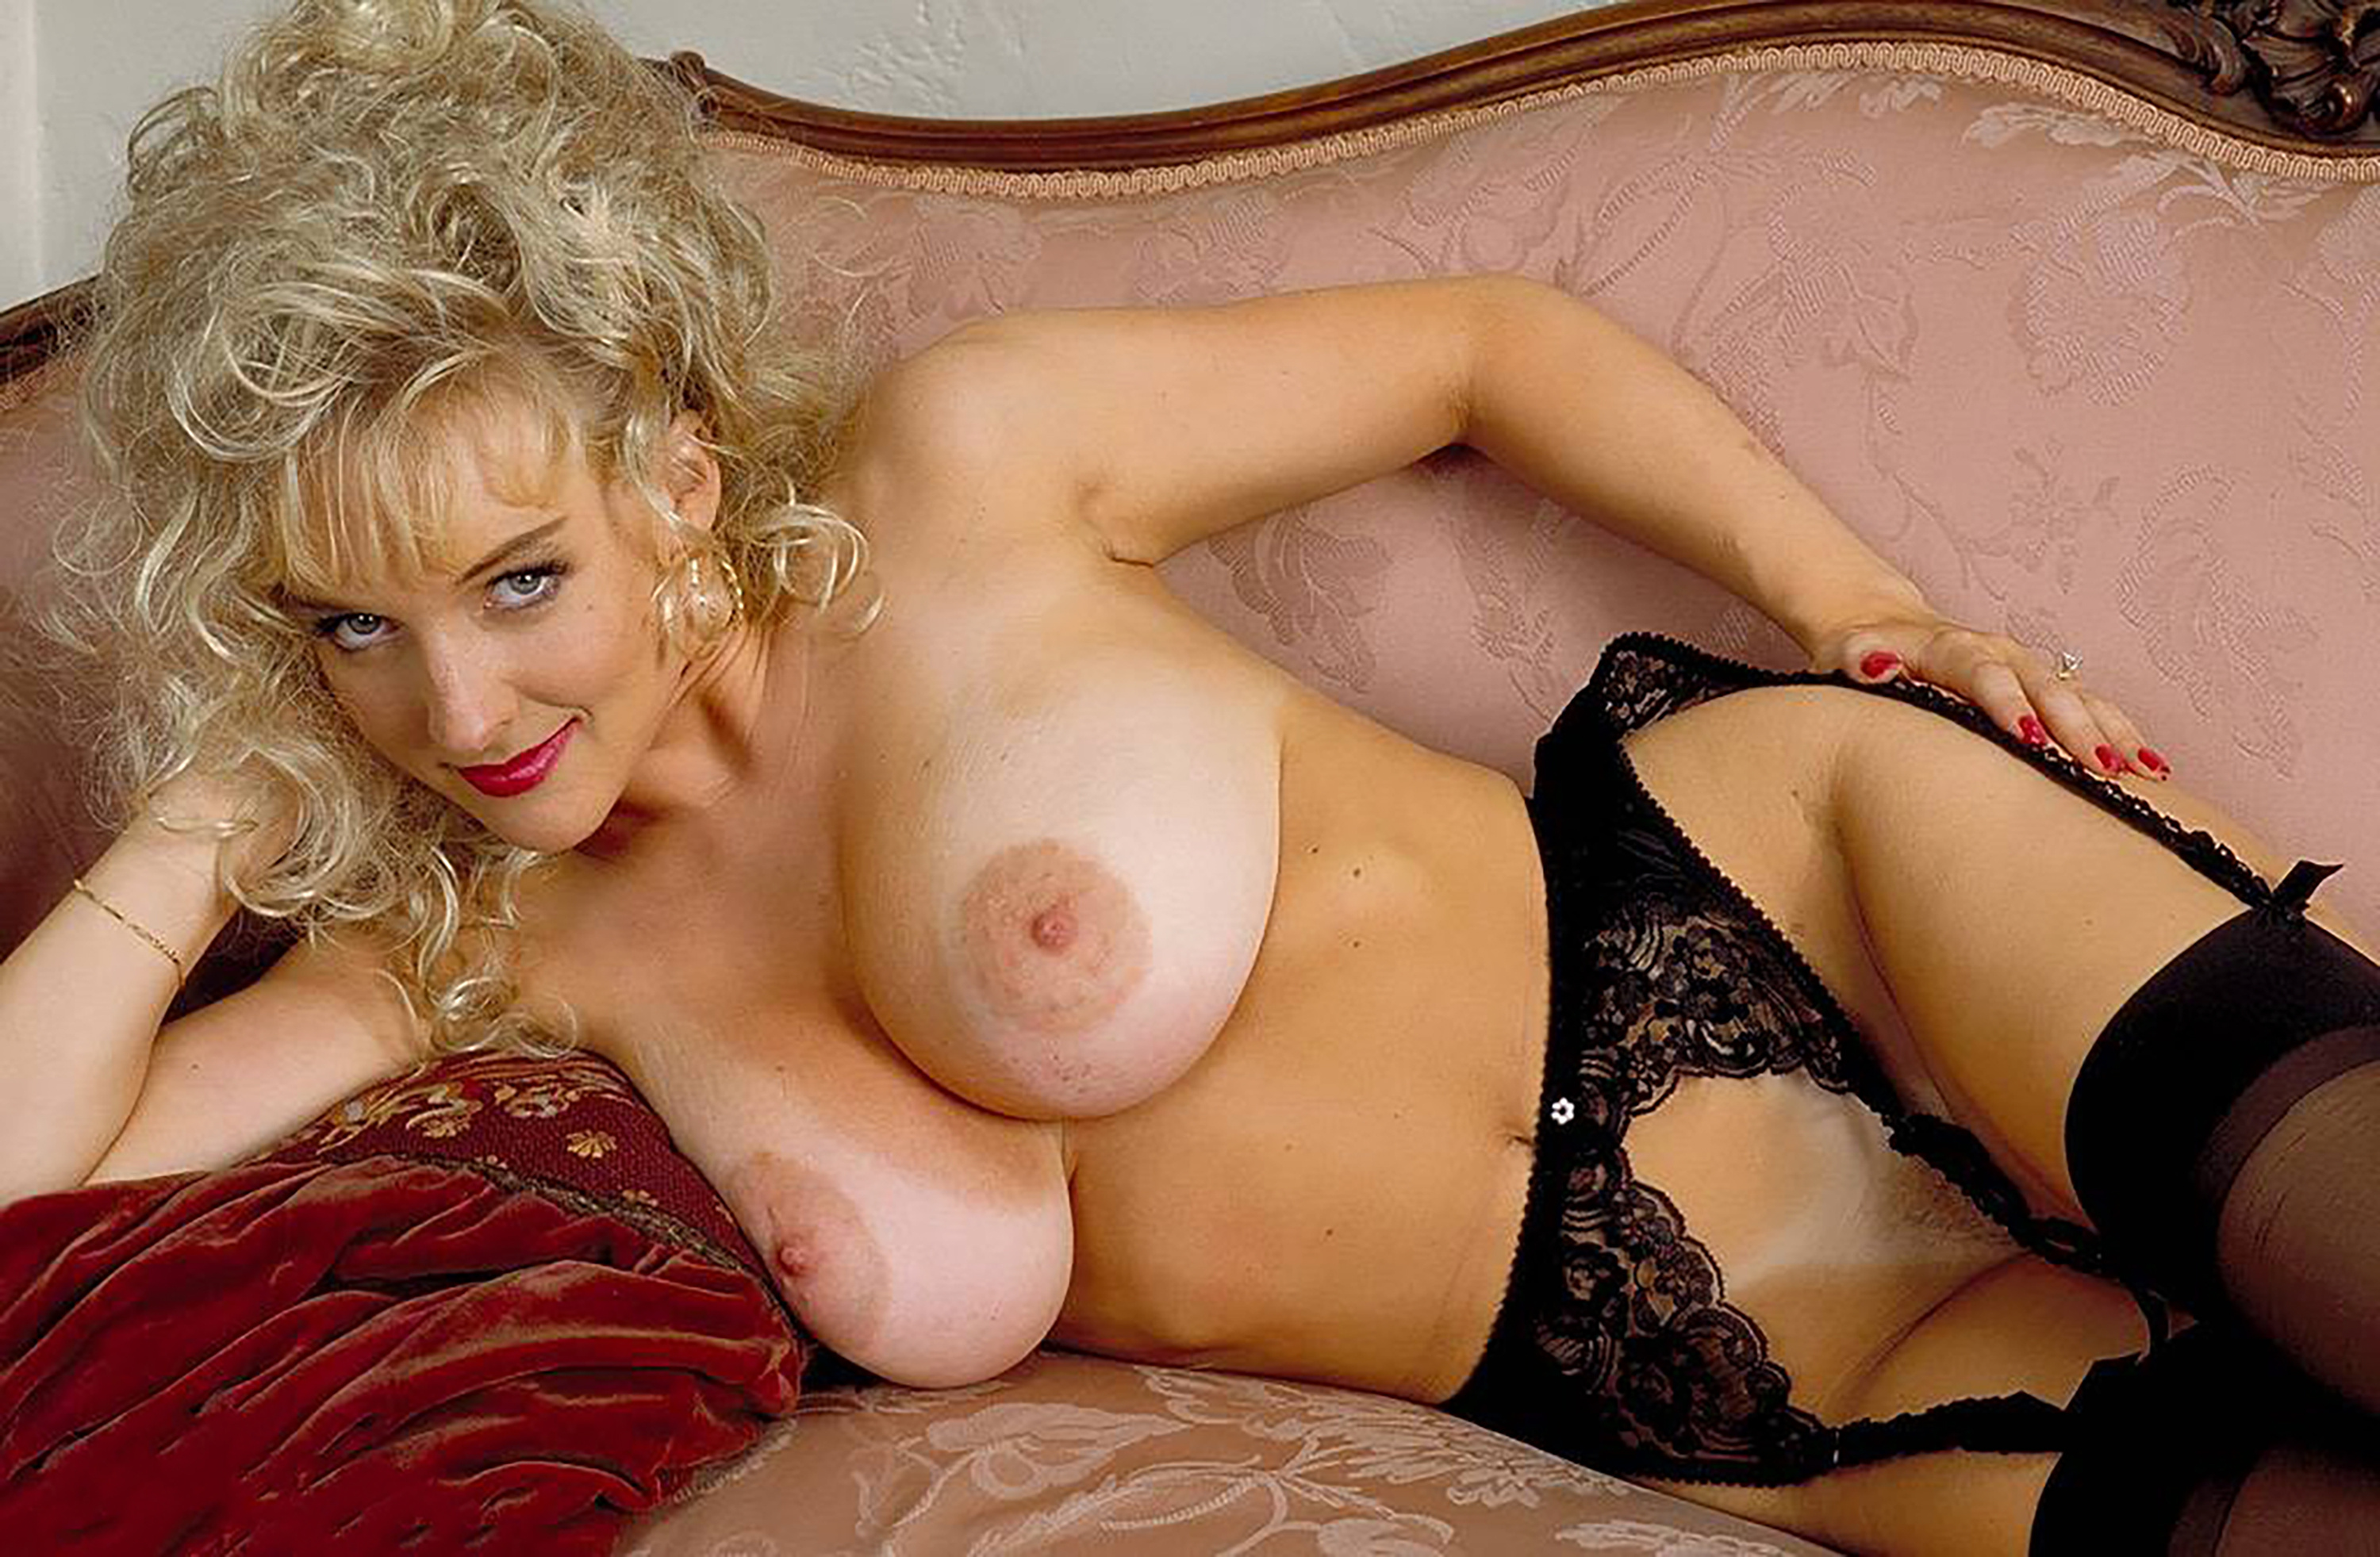 Wallpaper Danni Ashe, Blonde, Stockings, Lingerie, Tits -7460